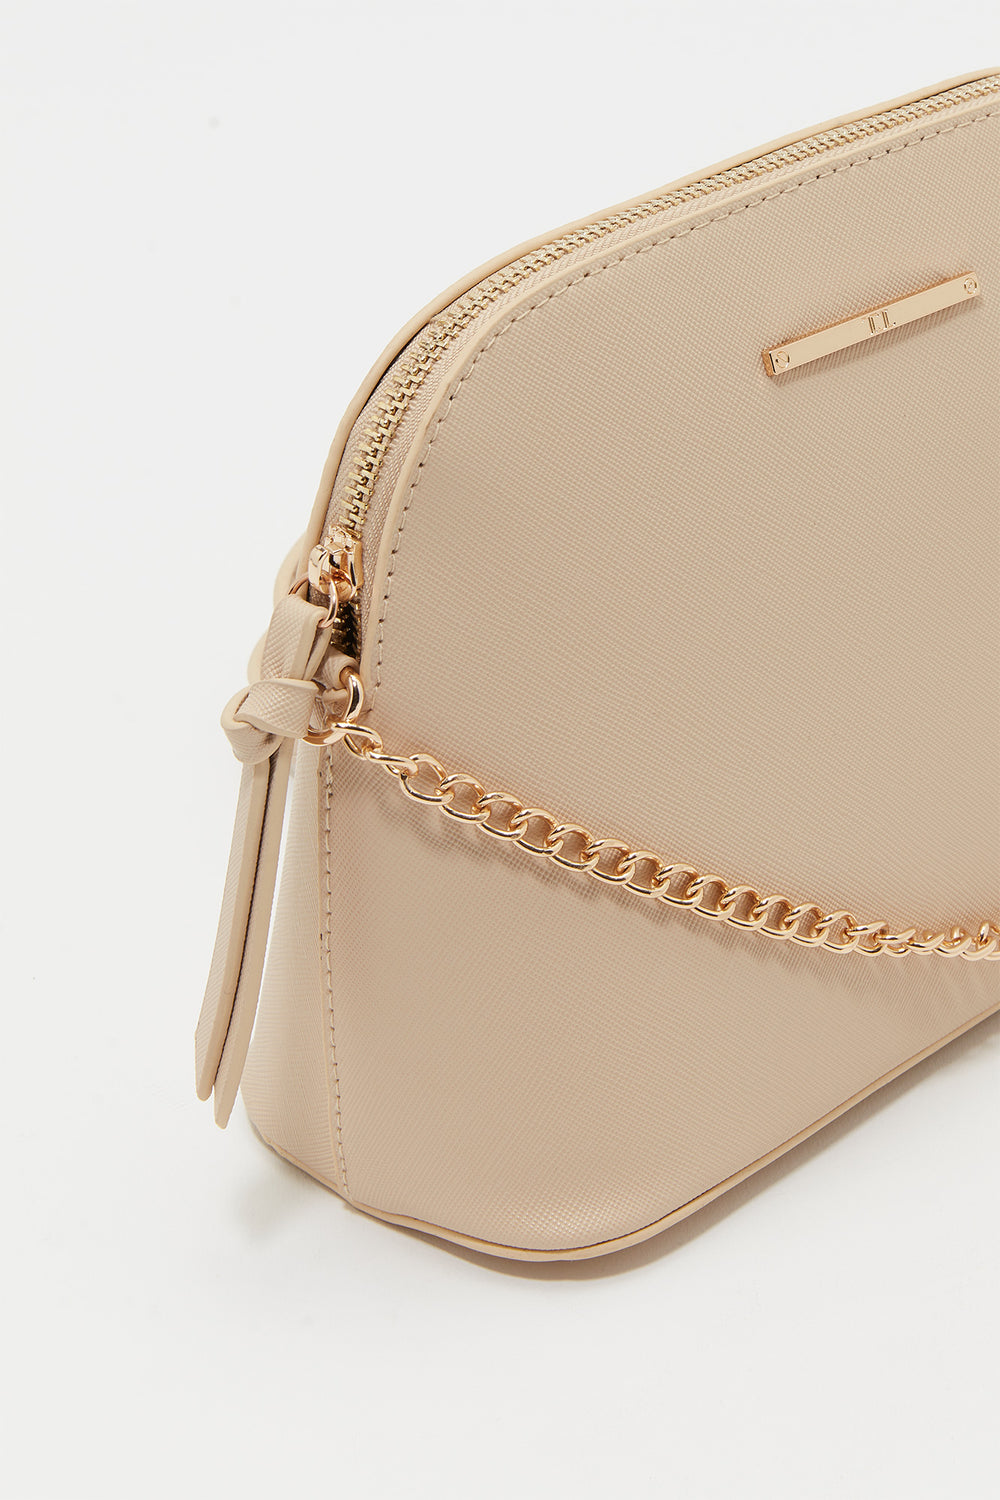 D-Shape Chain Strap Crossbody Bag Natural